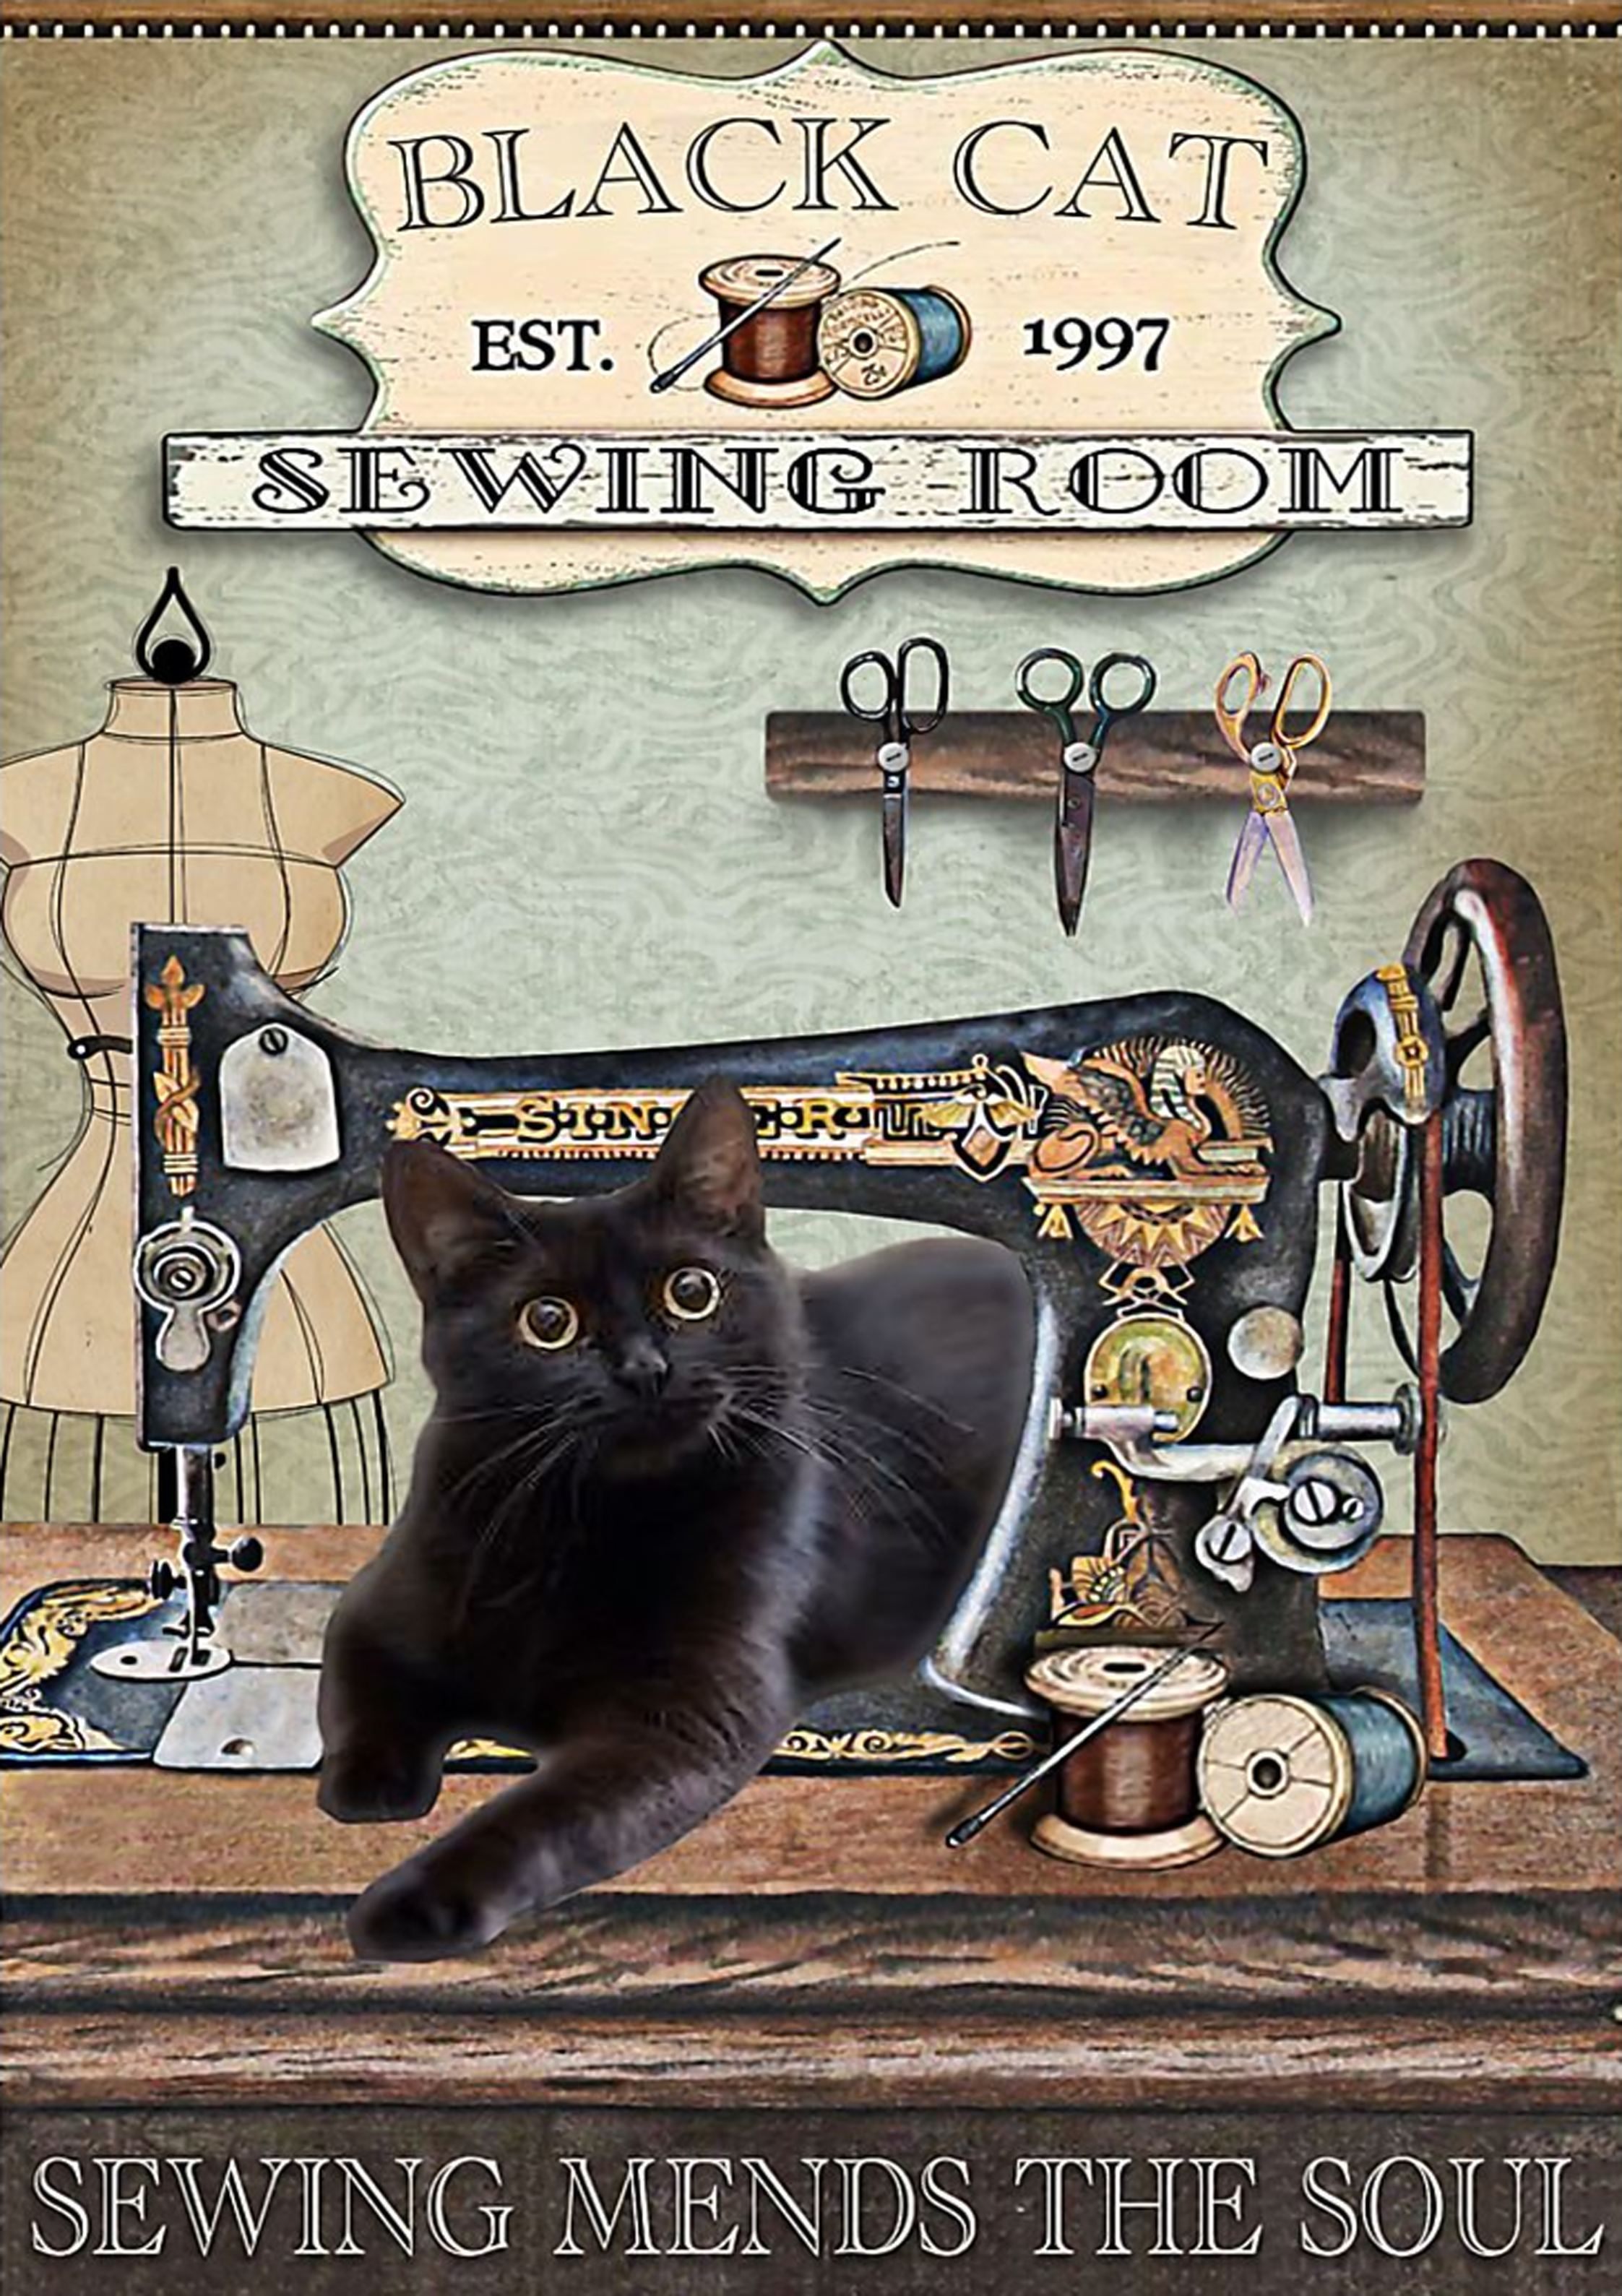 Black cat sewing room sewing mend the soul poster